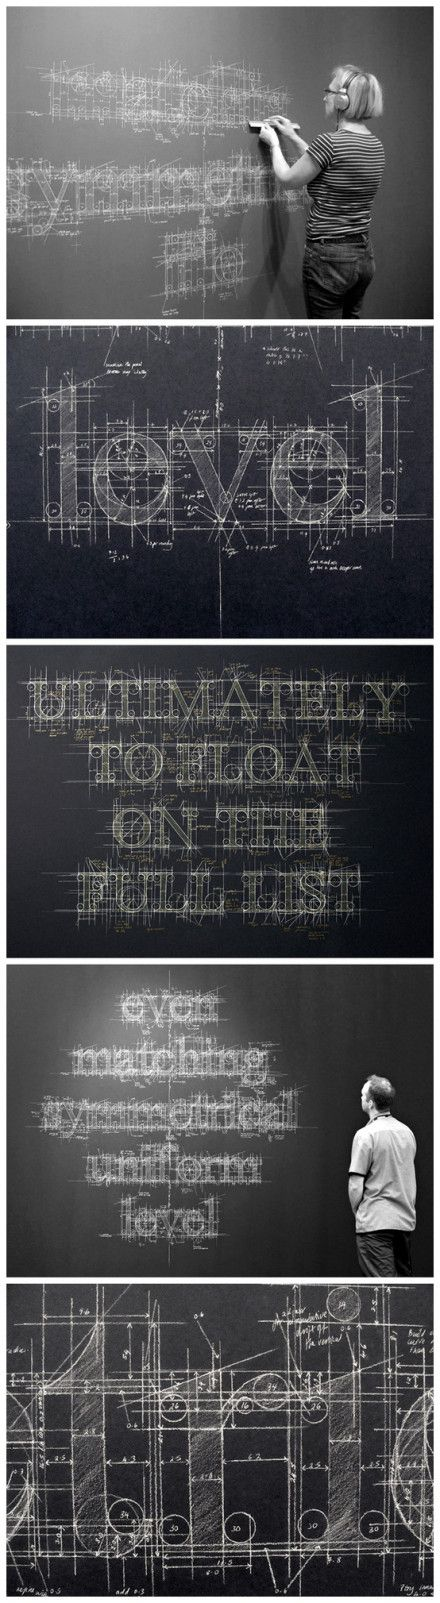 Typo - Liz Collini font Design Art